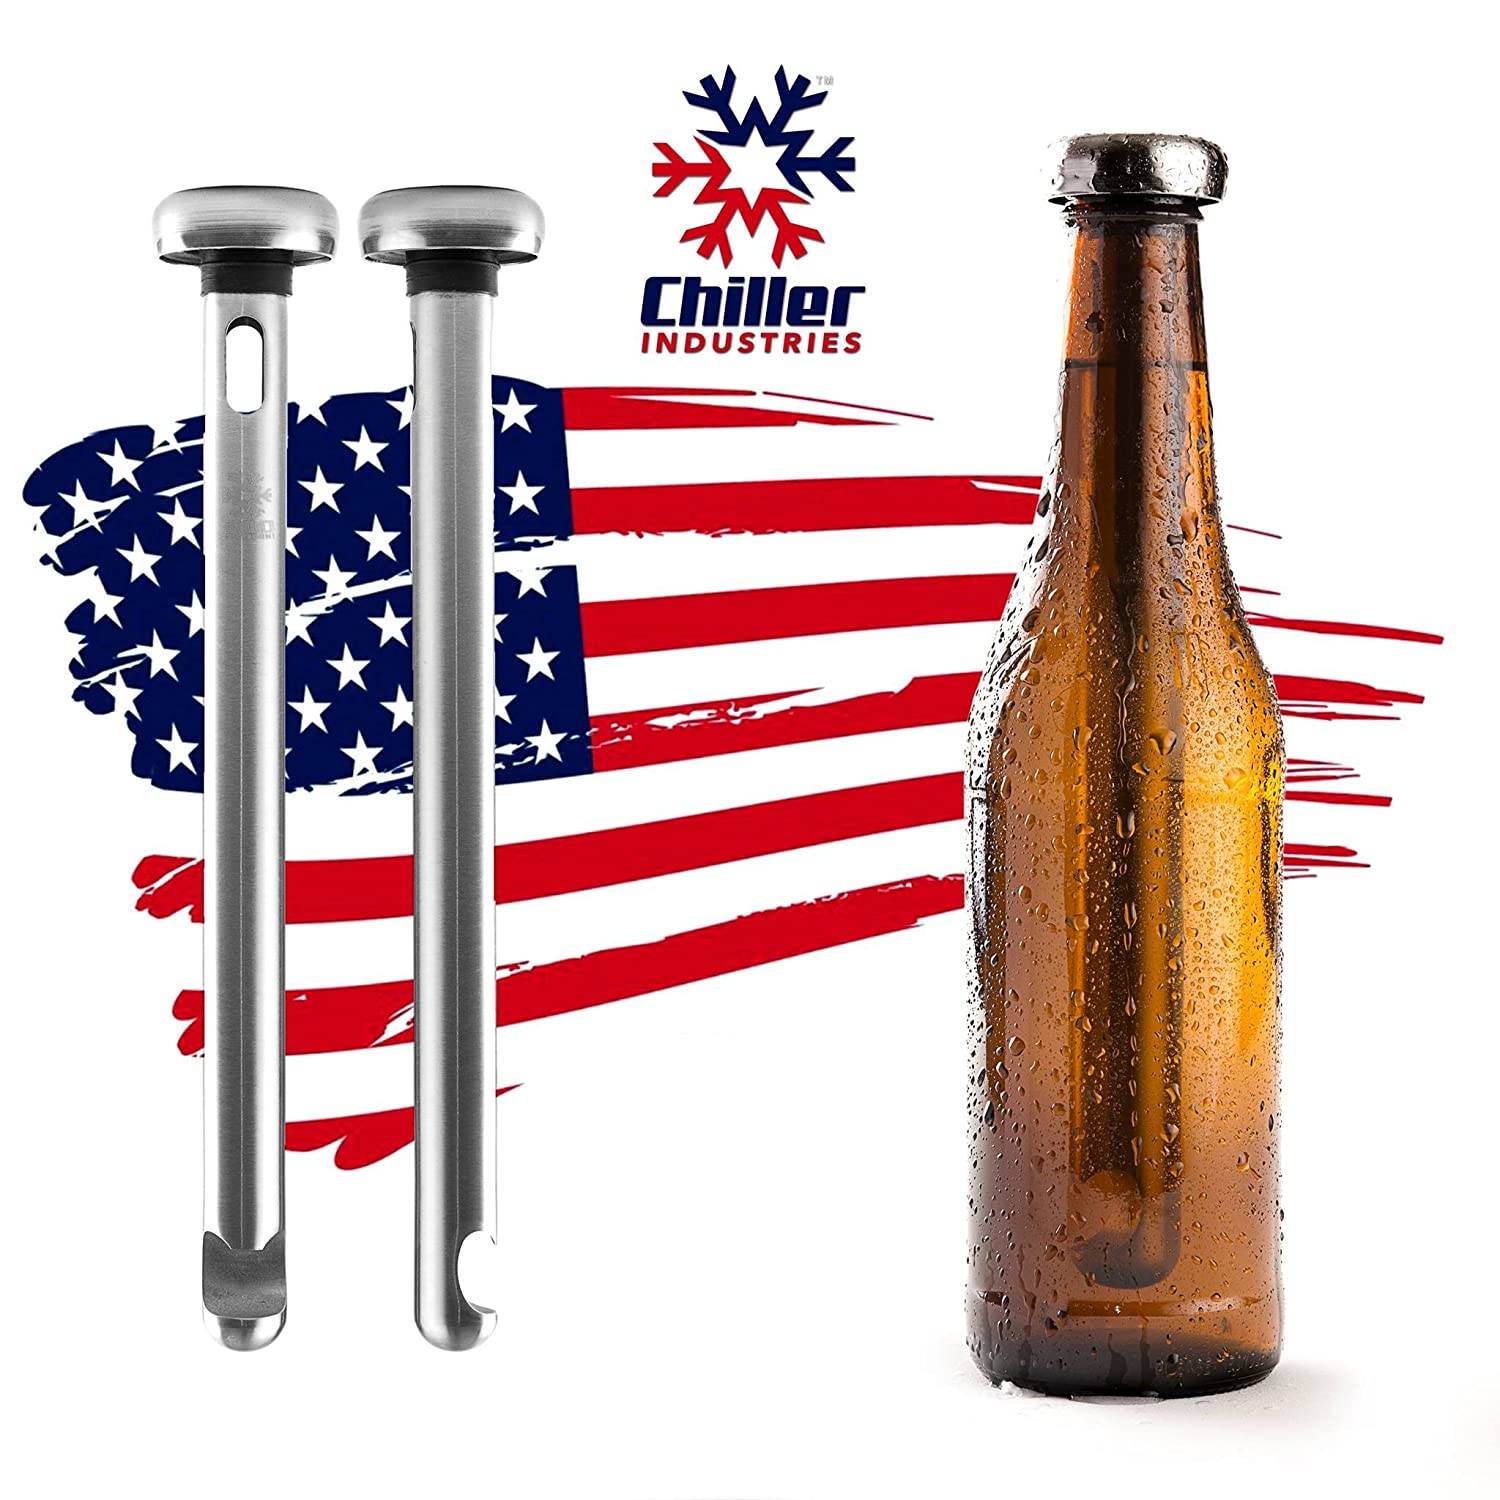 Beer Chiller By Chiller Industries - 2 Pack / Built-In Bottle Opener / Stainless Steel Drink Chiller Sticks Keep Bottled Drinks Cold / Cools Beverage Without Watering It Down